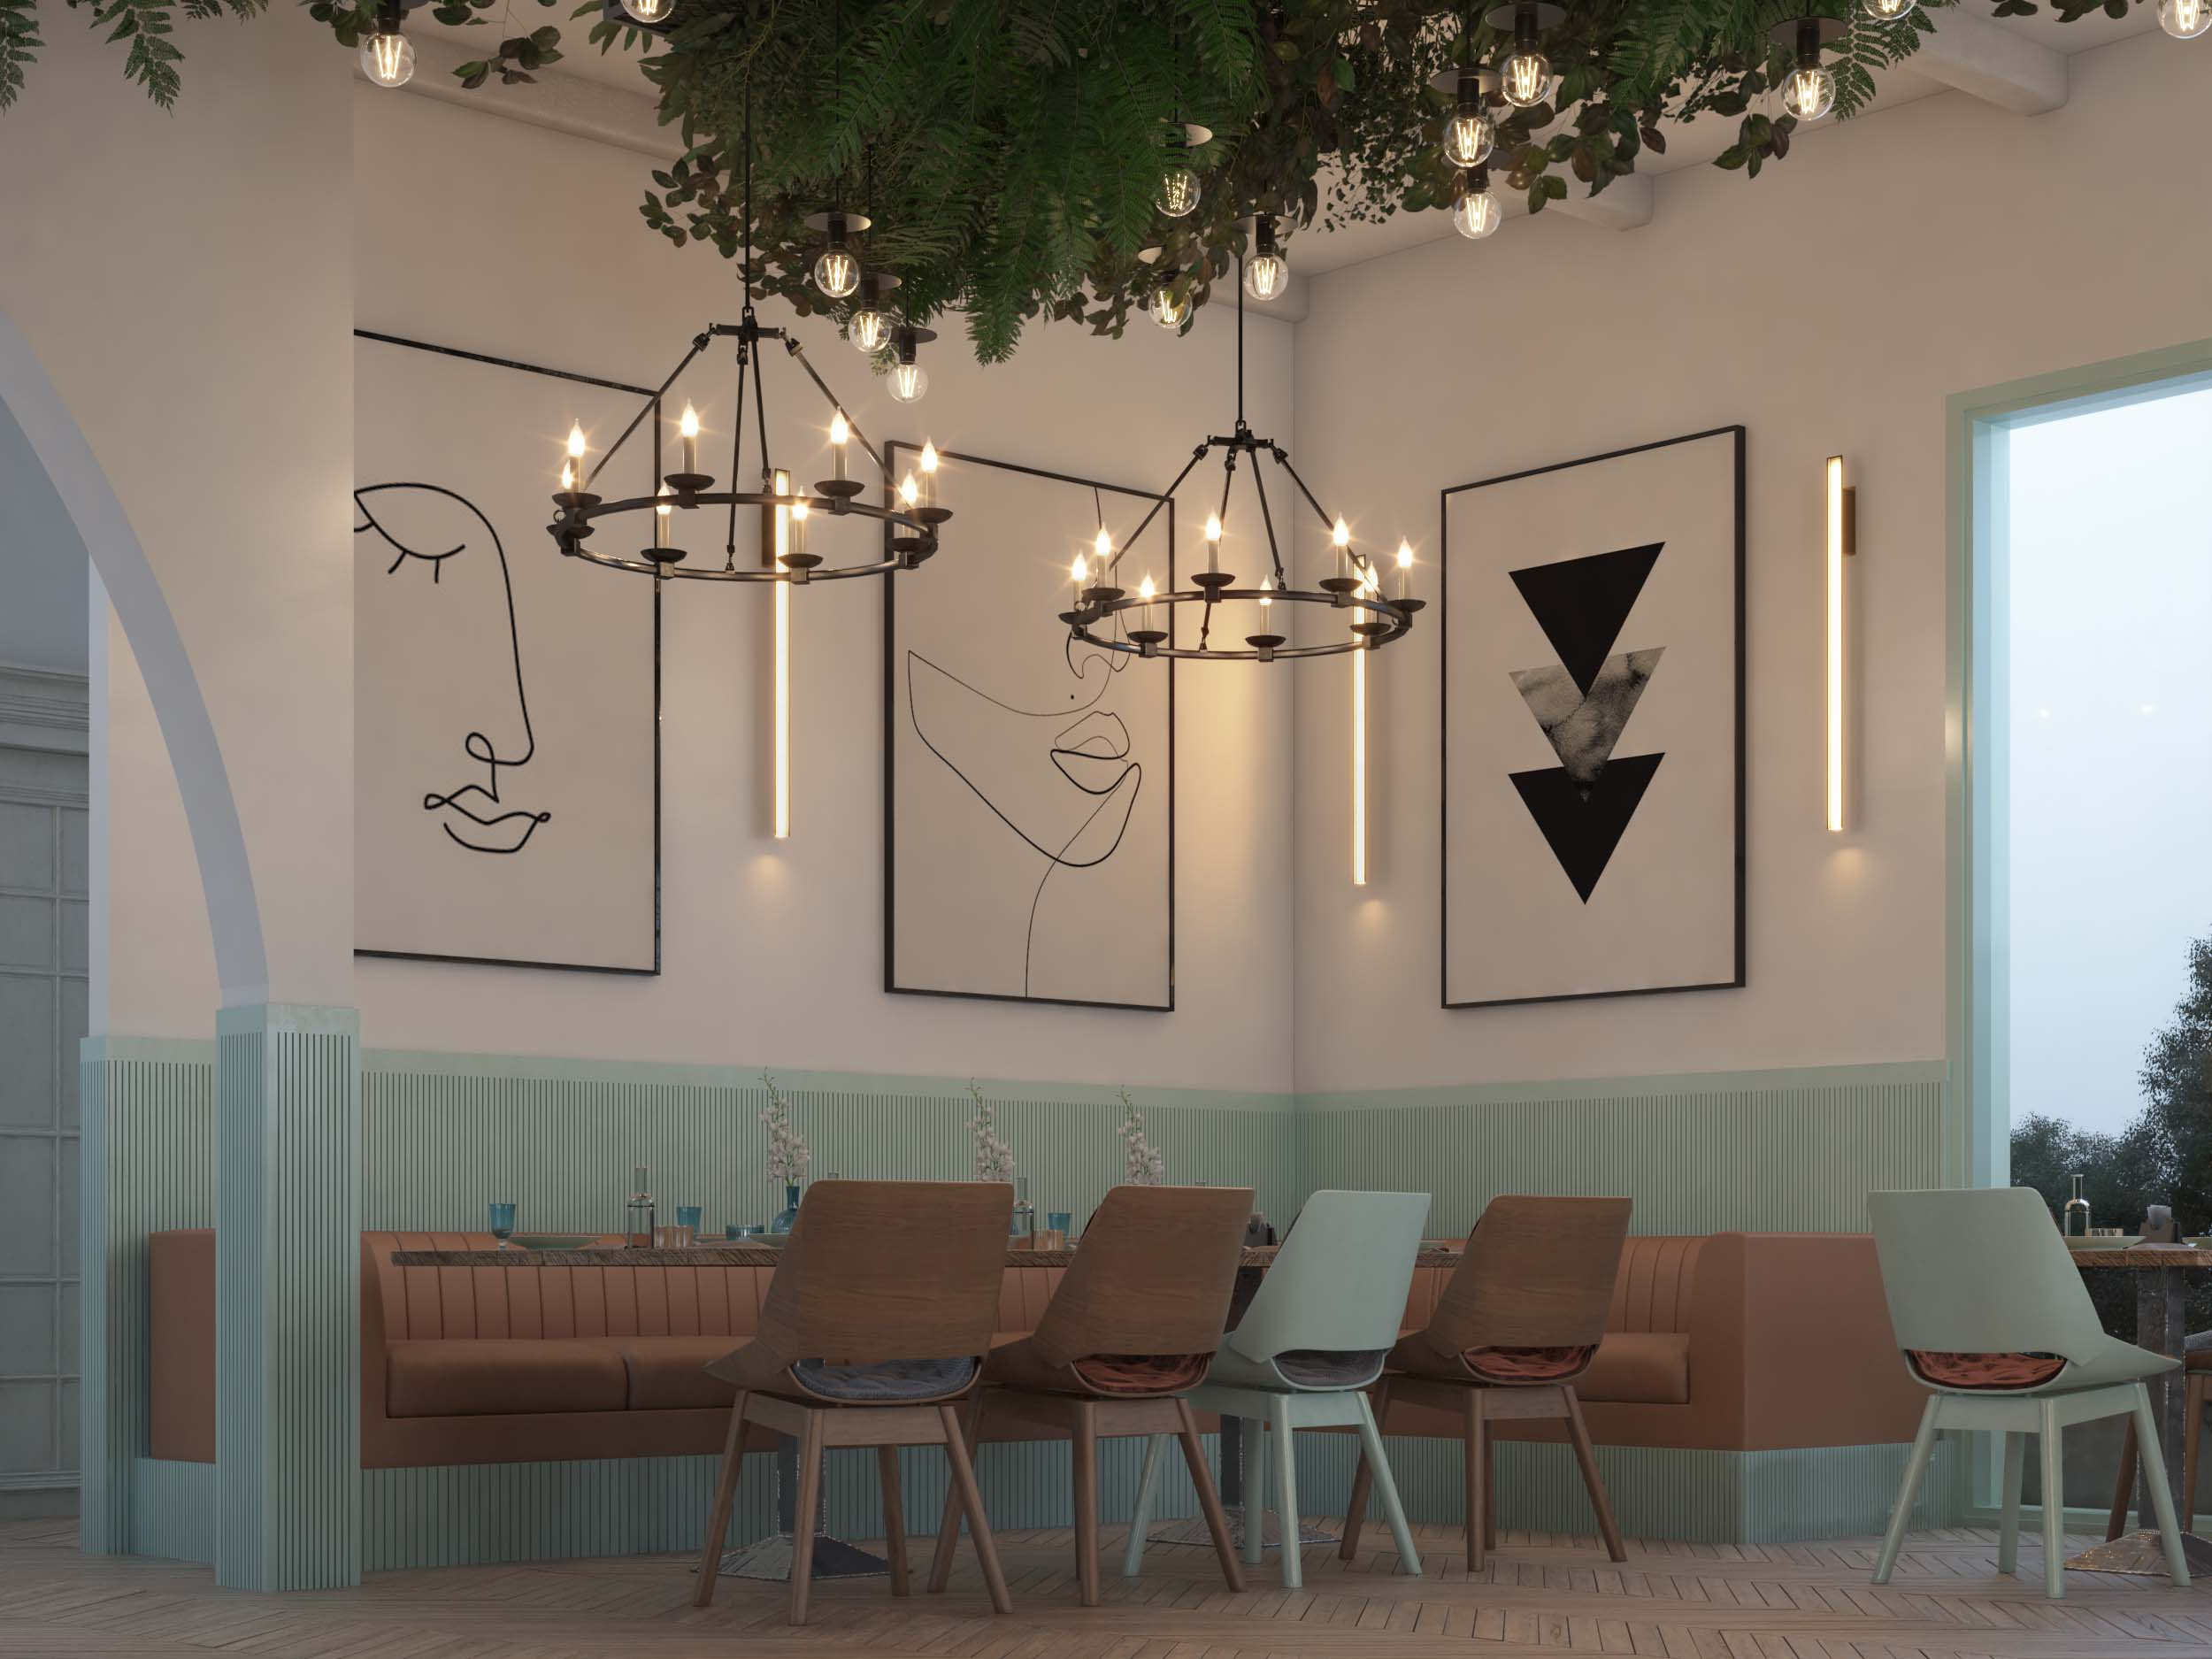 AMERICAN CAFE DESIGN- PAINTING DESIGN - LIGHT WORK- OLD STYLE